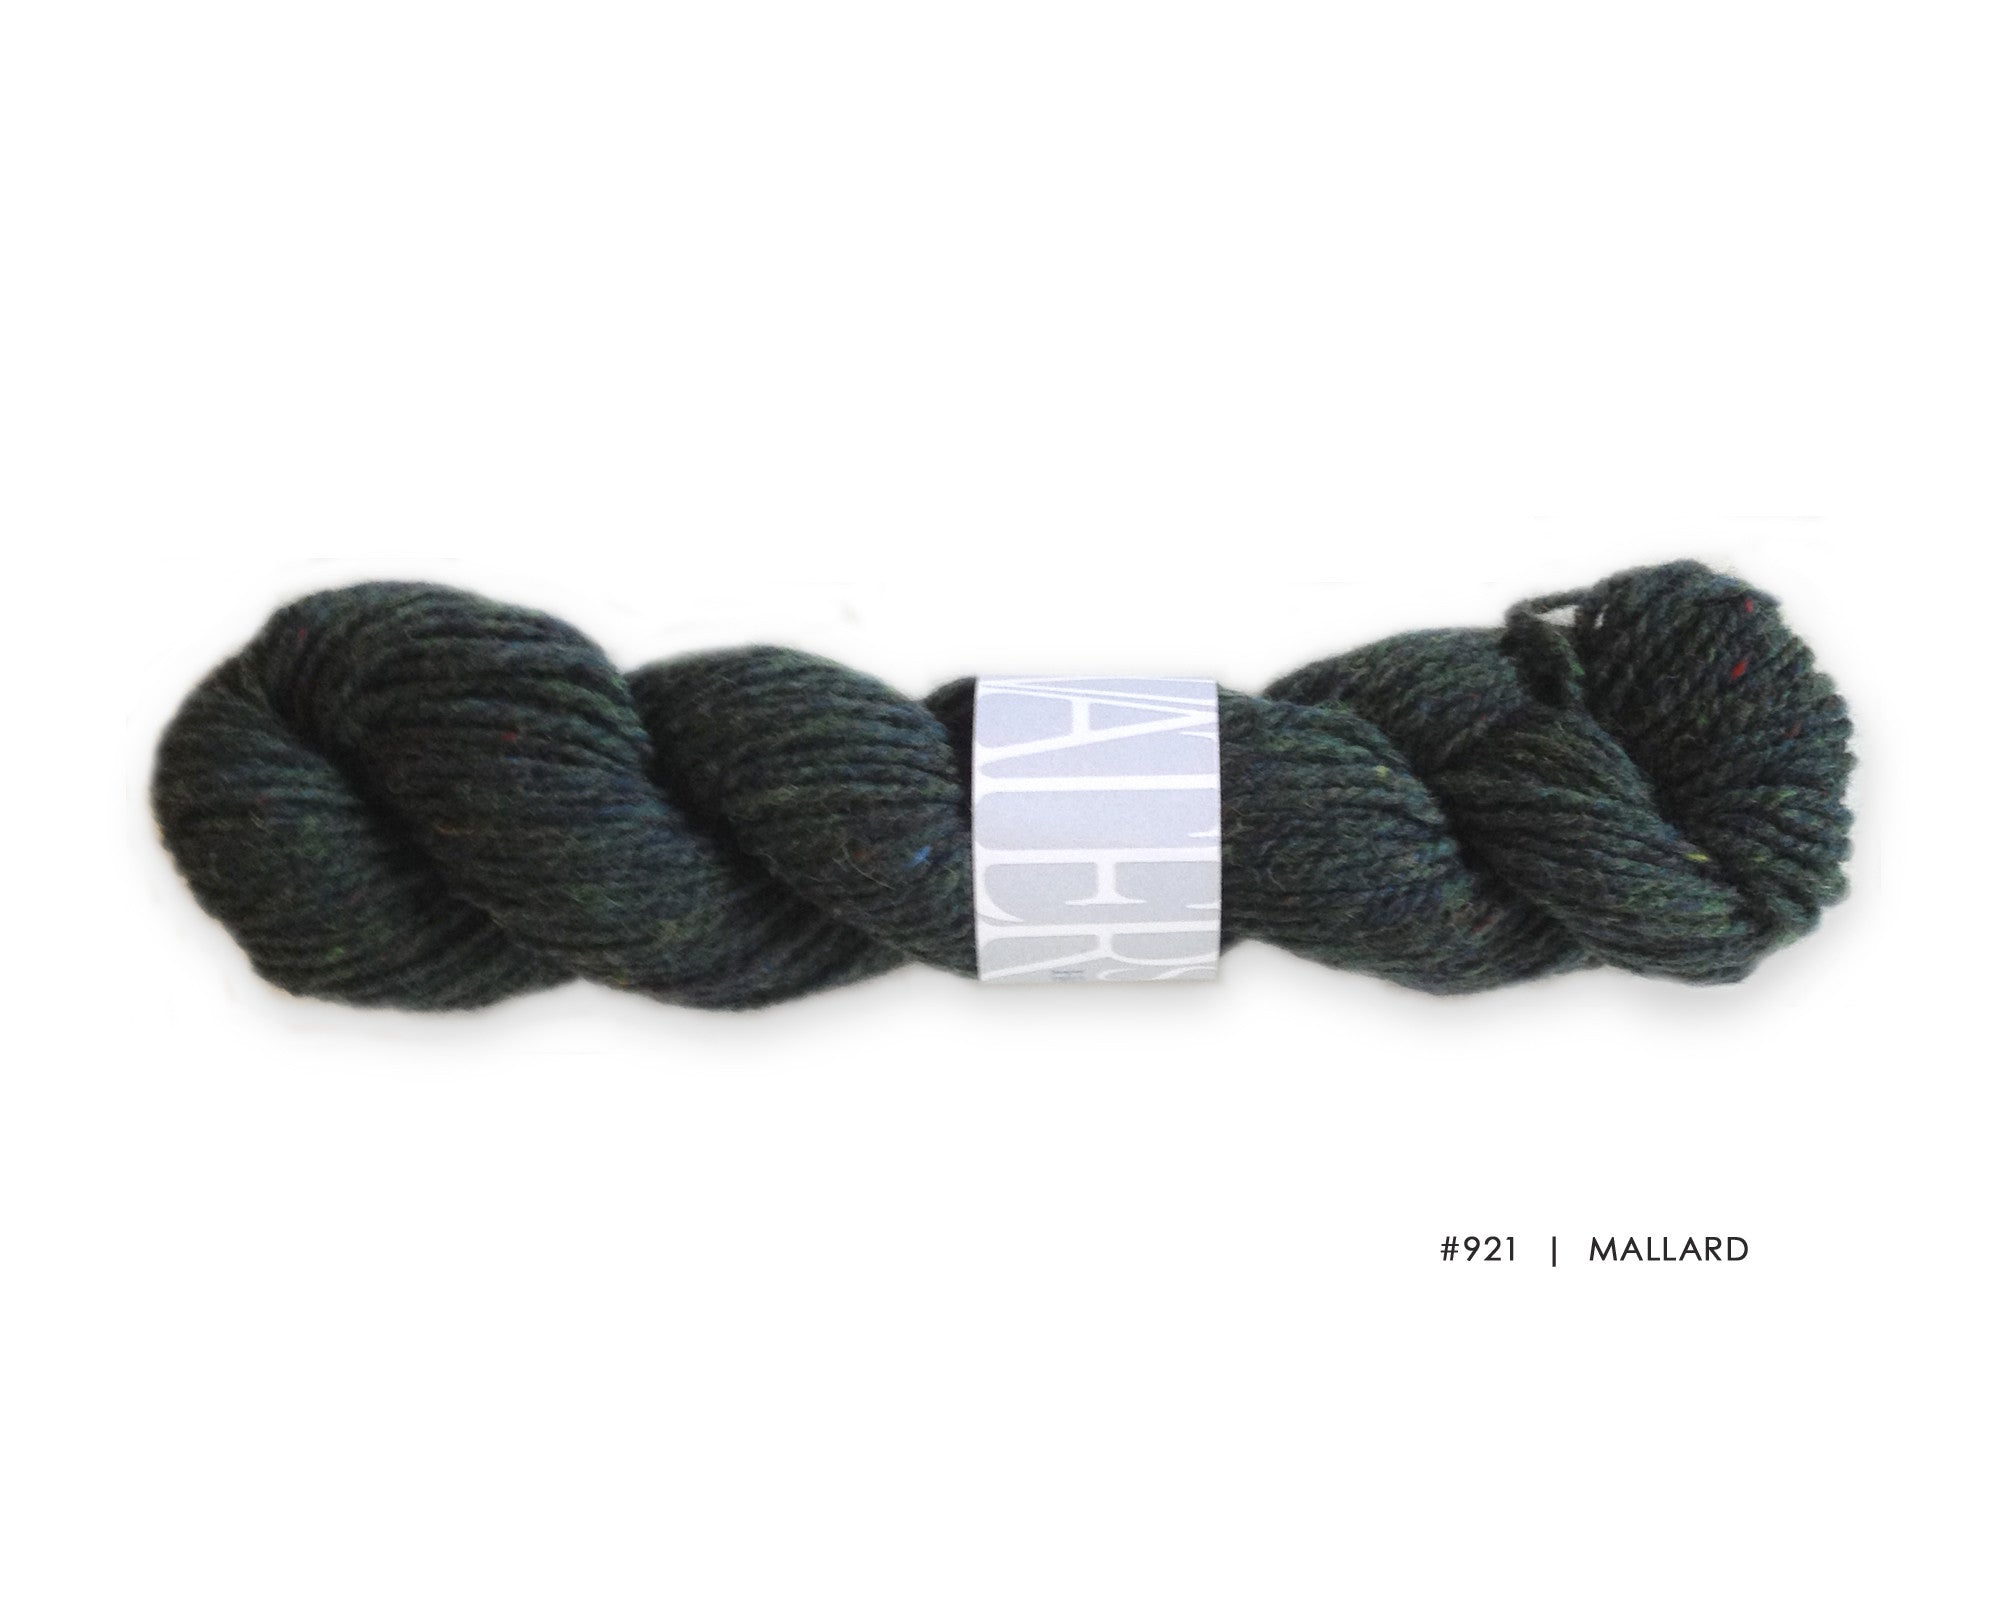 Watershed yarn from Harrisville Designs, worsted weight 100% wool. Soft spun, super heathered, super cushy! Mallard